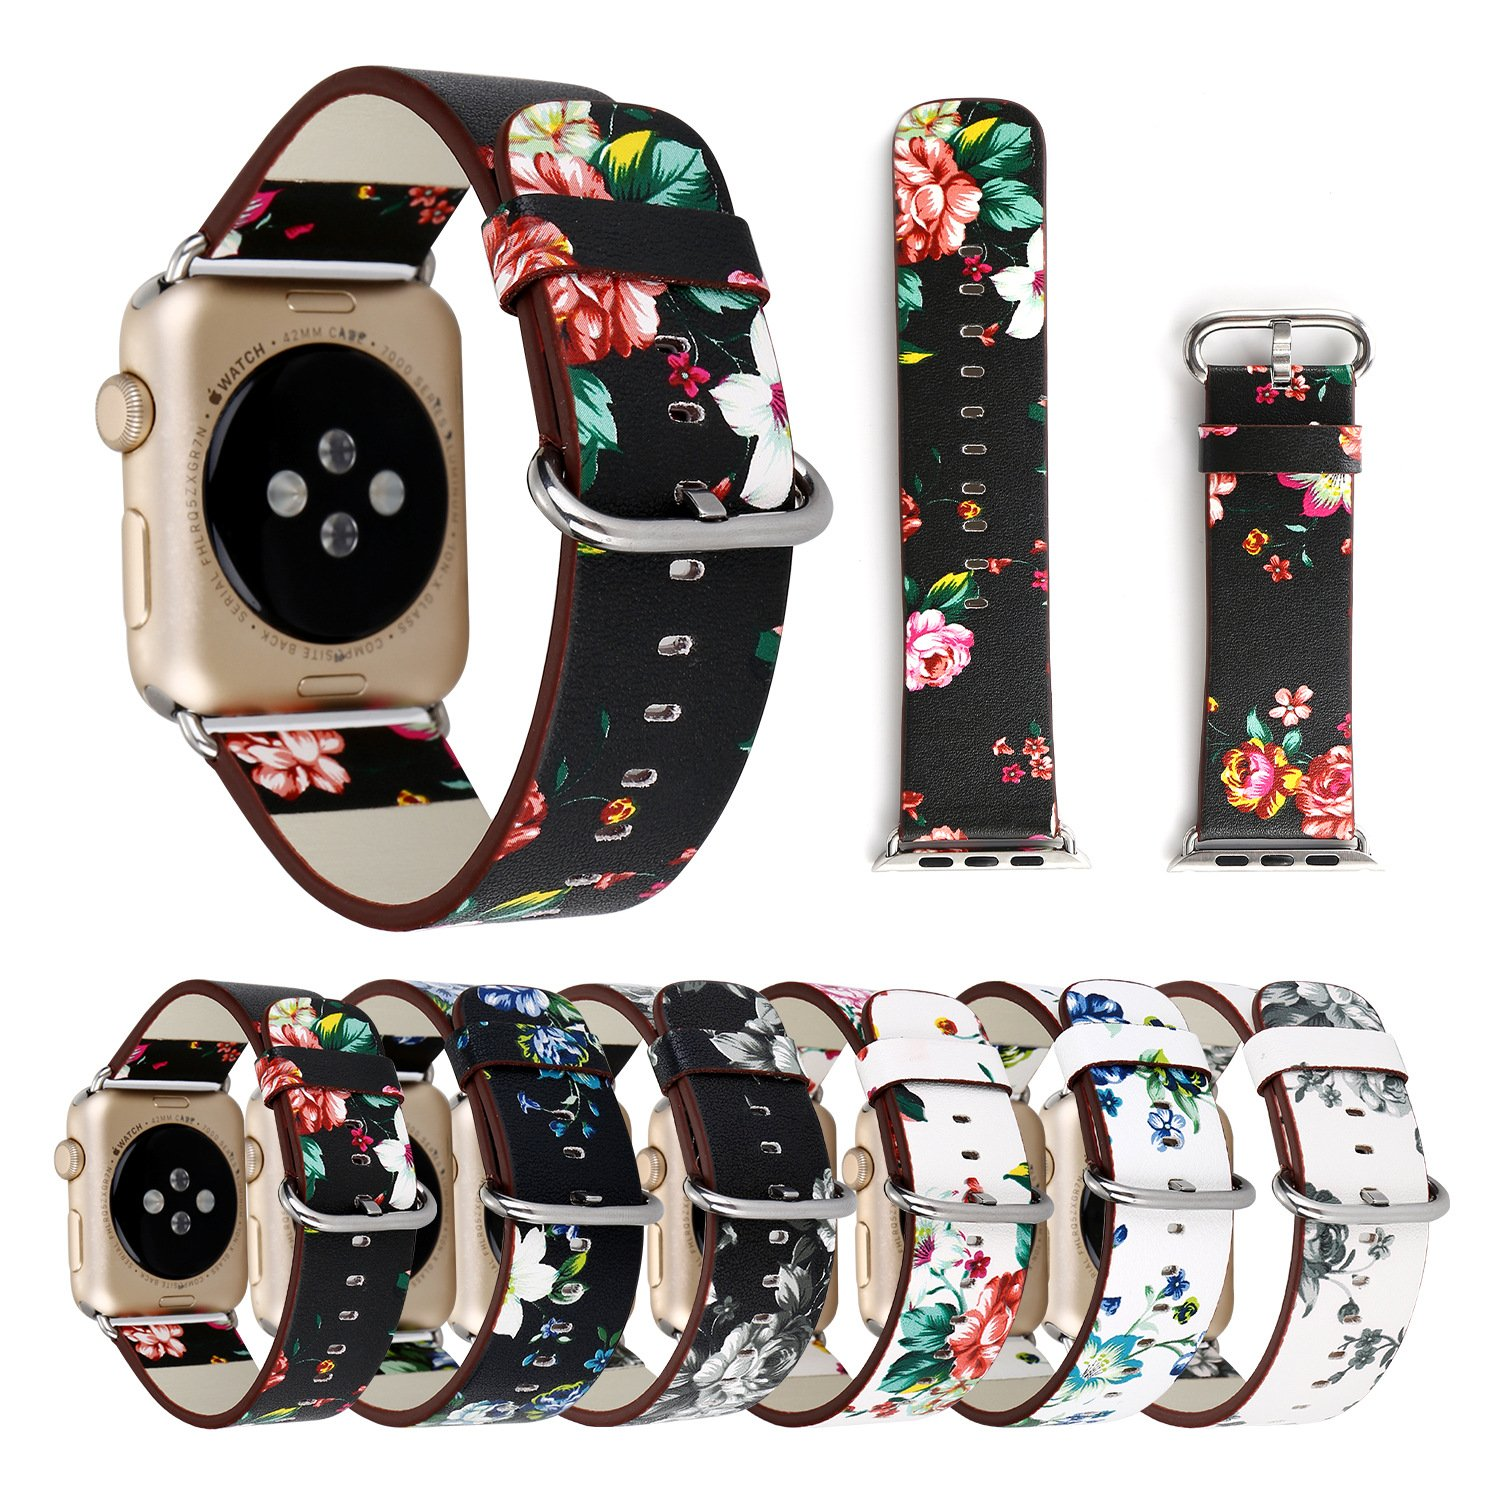 for Apple Watch Band Wrist Watch Strap Bracelet Loop Series 1 Series 2 Series 3 Series 4 38MM/40MM,42MM/44MM SizeName Top Apple Watch Band 38mm Top Apple Watch Bands (Black red, 38mm40mm) by TIMESFRIEND